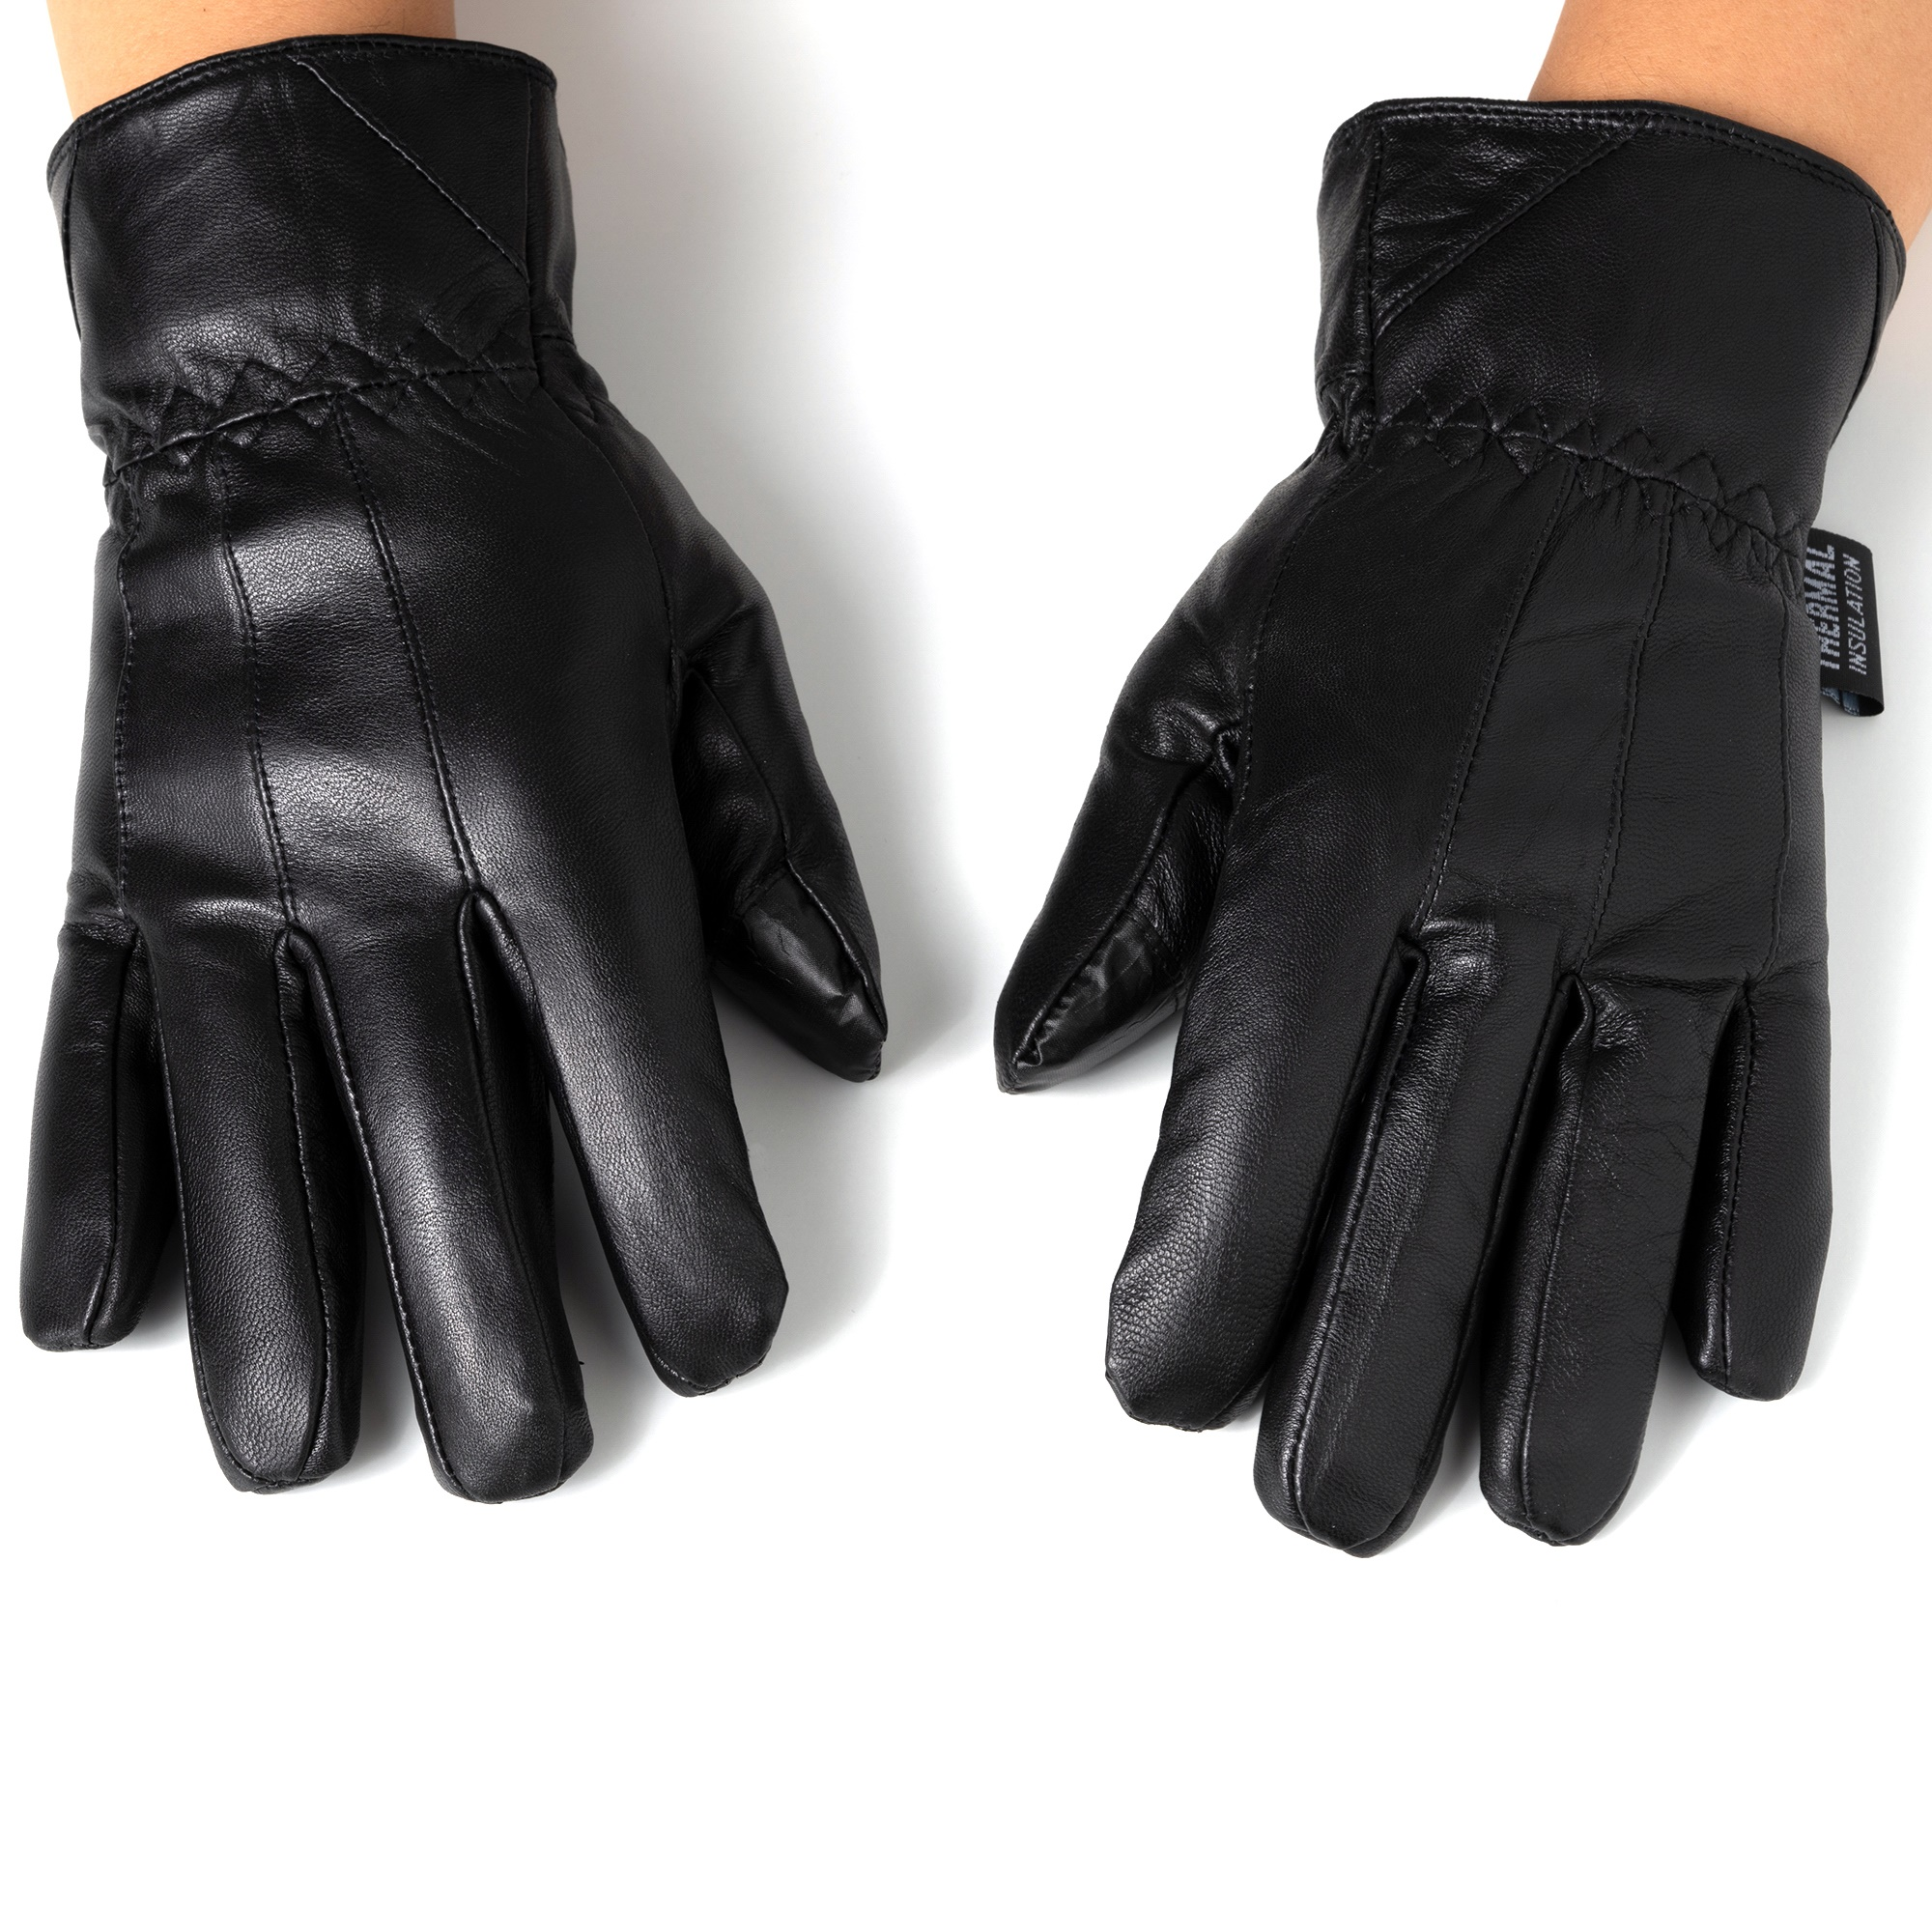 Alpine-Swiss-Mens-Touch-Screen-Gloves-Leather-Thermal-Lined-Phone-Texting-Gloves thumbnail 13